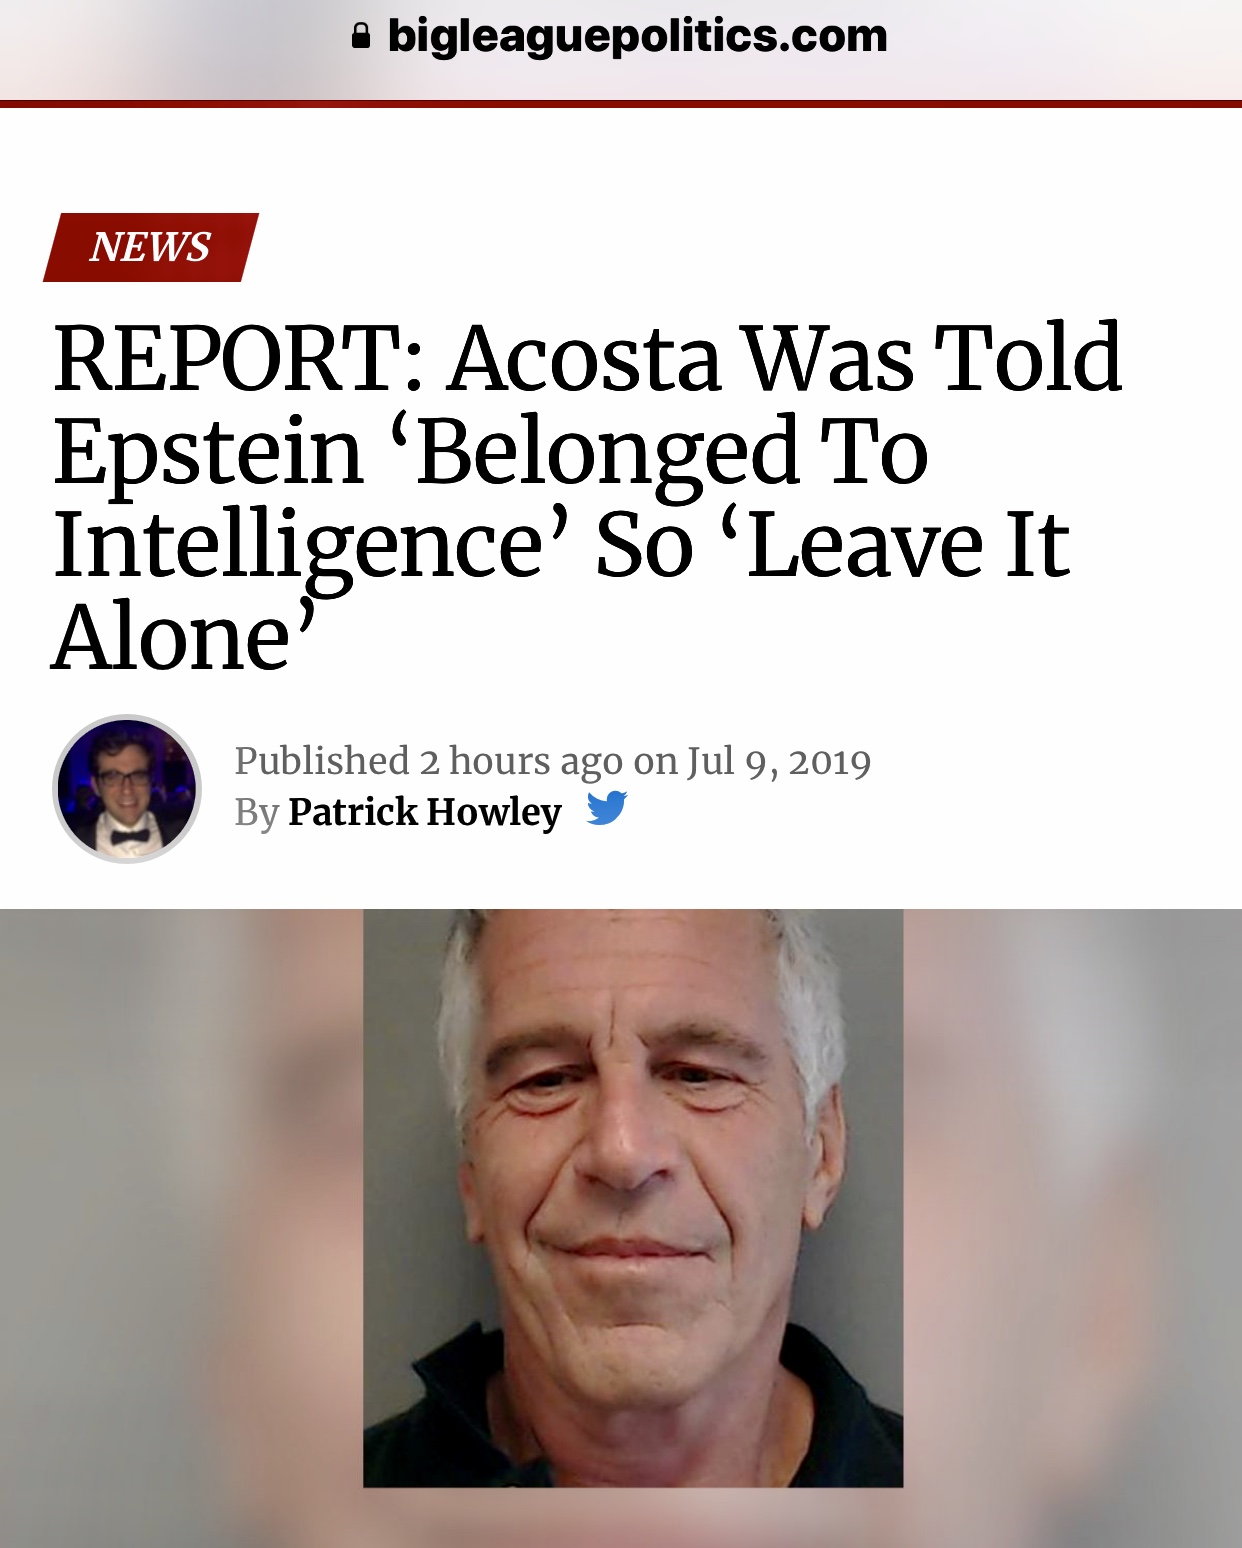 REPORT: Acosta Was Told Epstein 'Belonged To Intelligence' So 'Leave It Alone' – Big League Politics